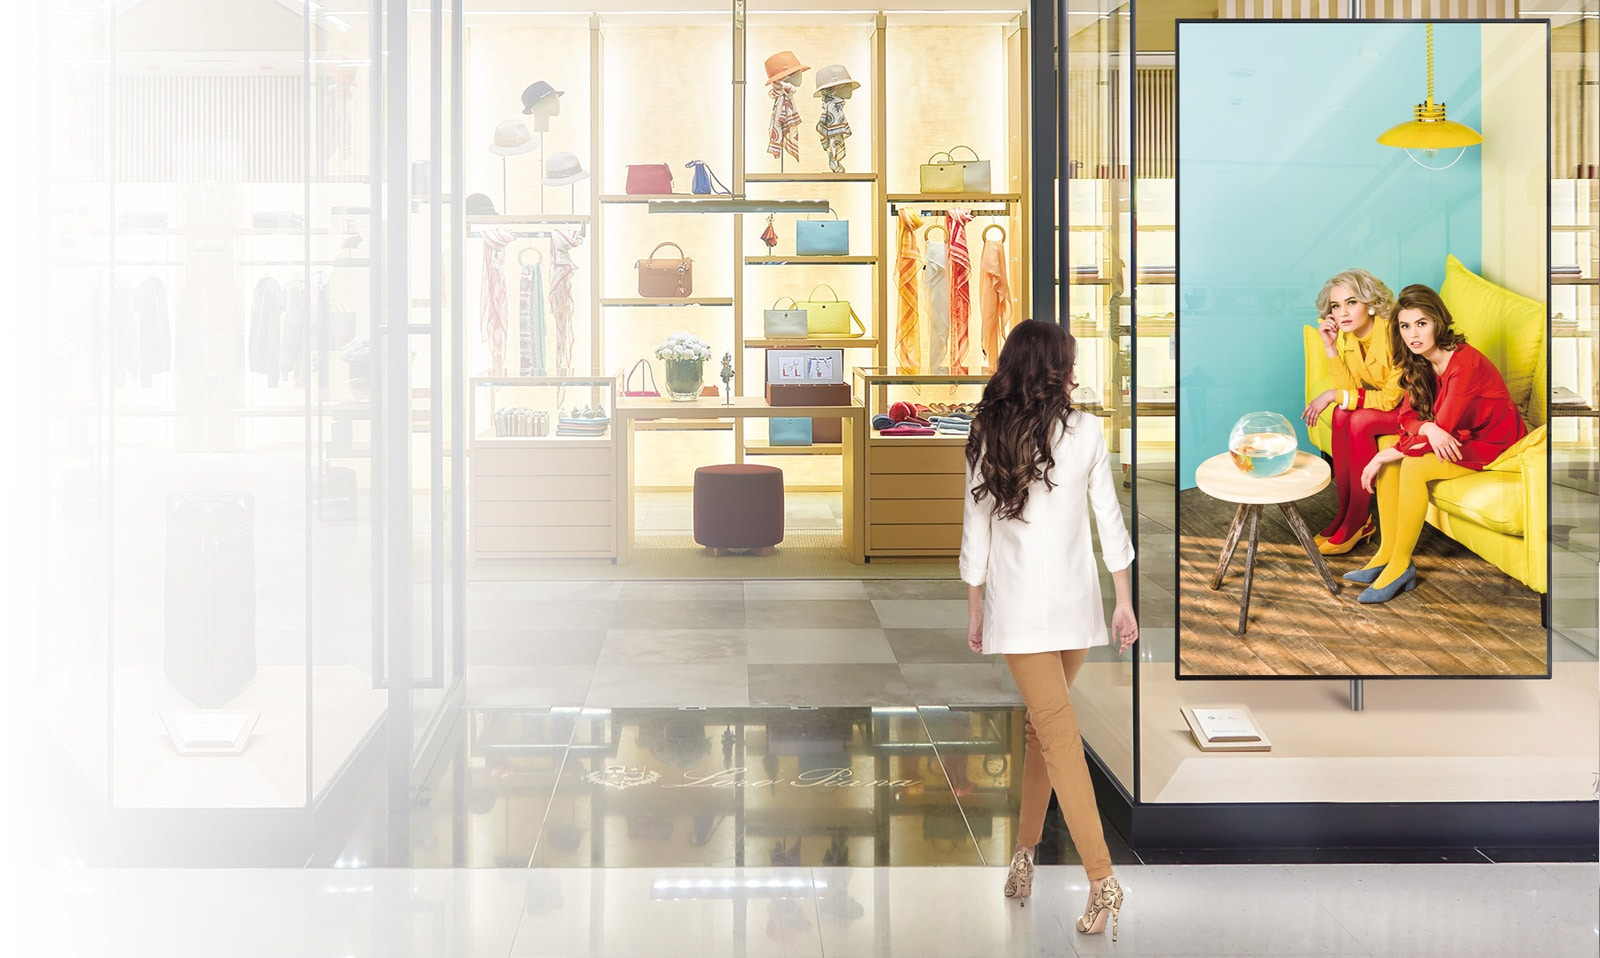 LG UHD Signage Captures the Customer's Attention1